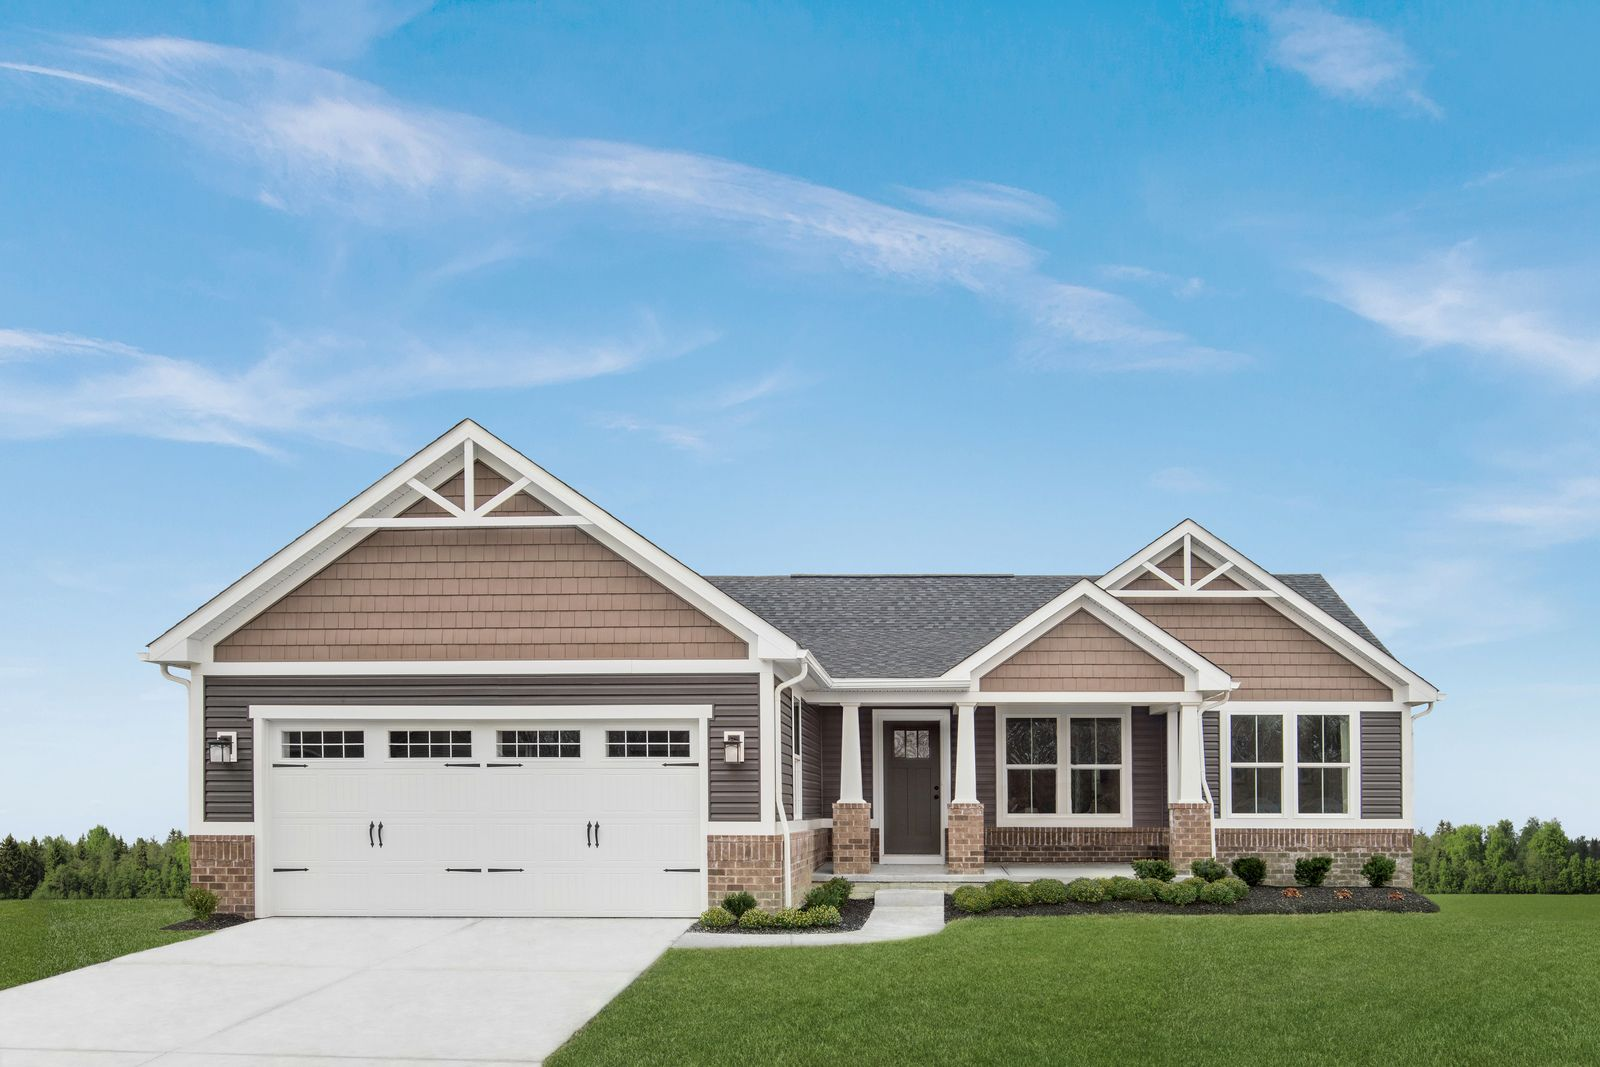 WELCOME HOME TO CEDAR GROVE:Highly Desired Tipp City School's lowest-priced new homes, finished basements & luxury features included, minutes to I-75! Low Miami County Taxes from upper $200s! Click here to learn more!